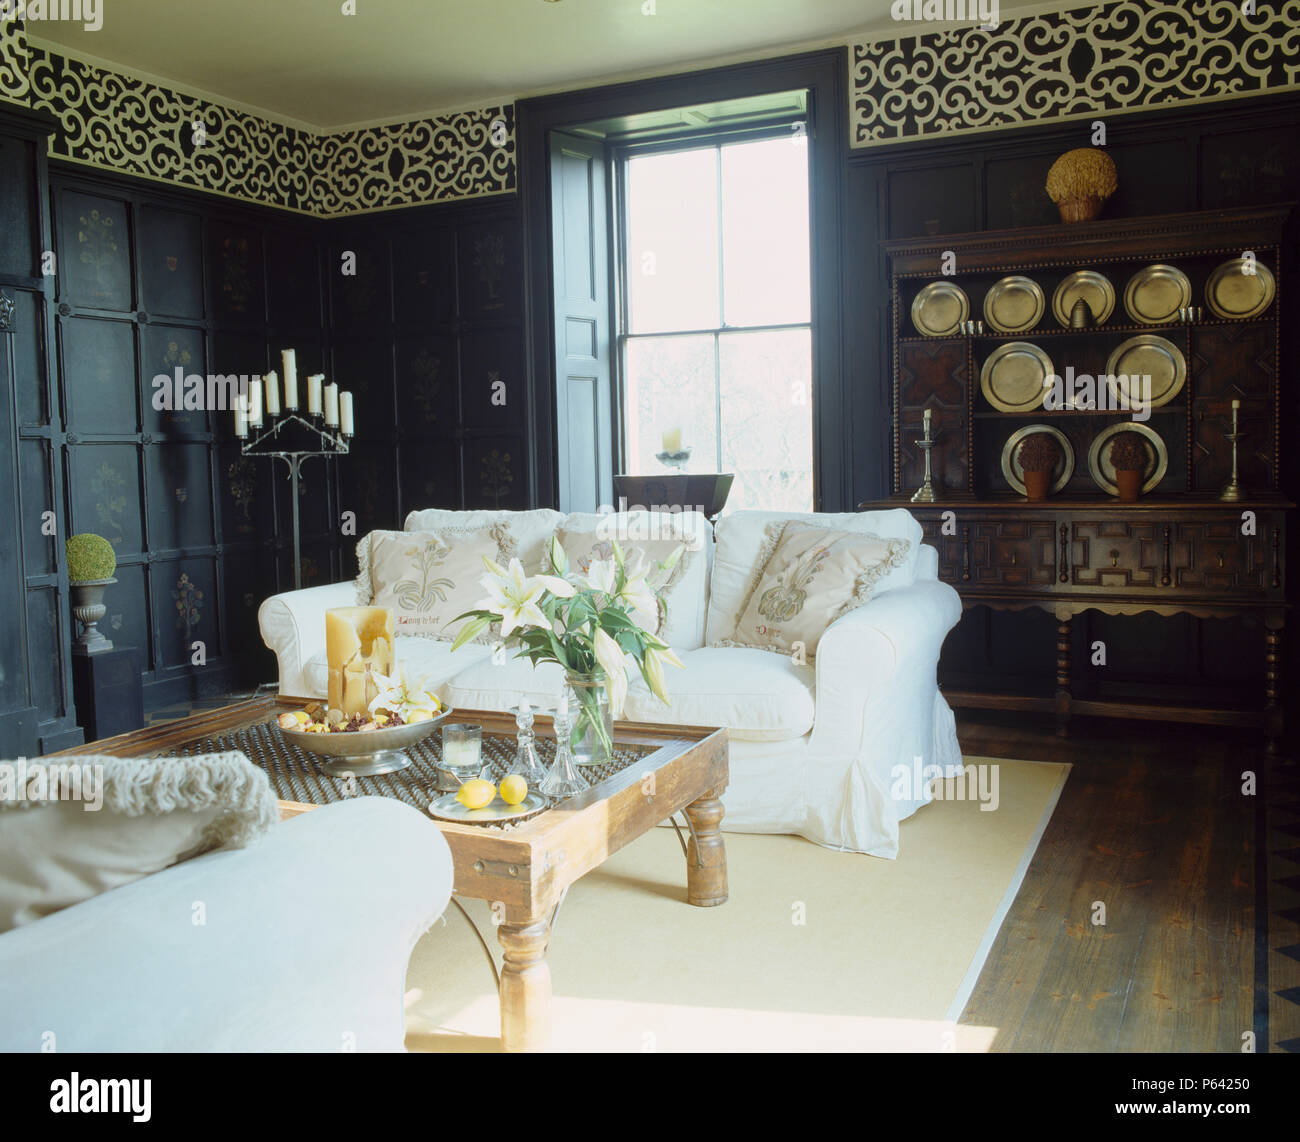 White Sofas And Cream Rug In Black Panelled Living Room With